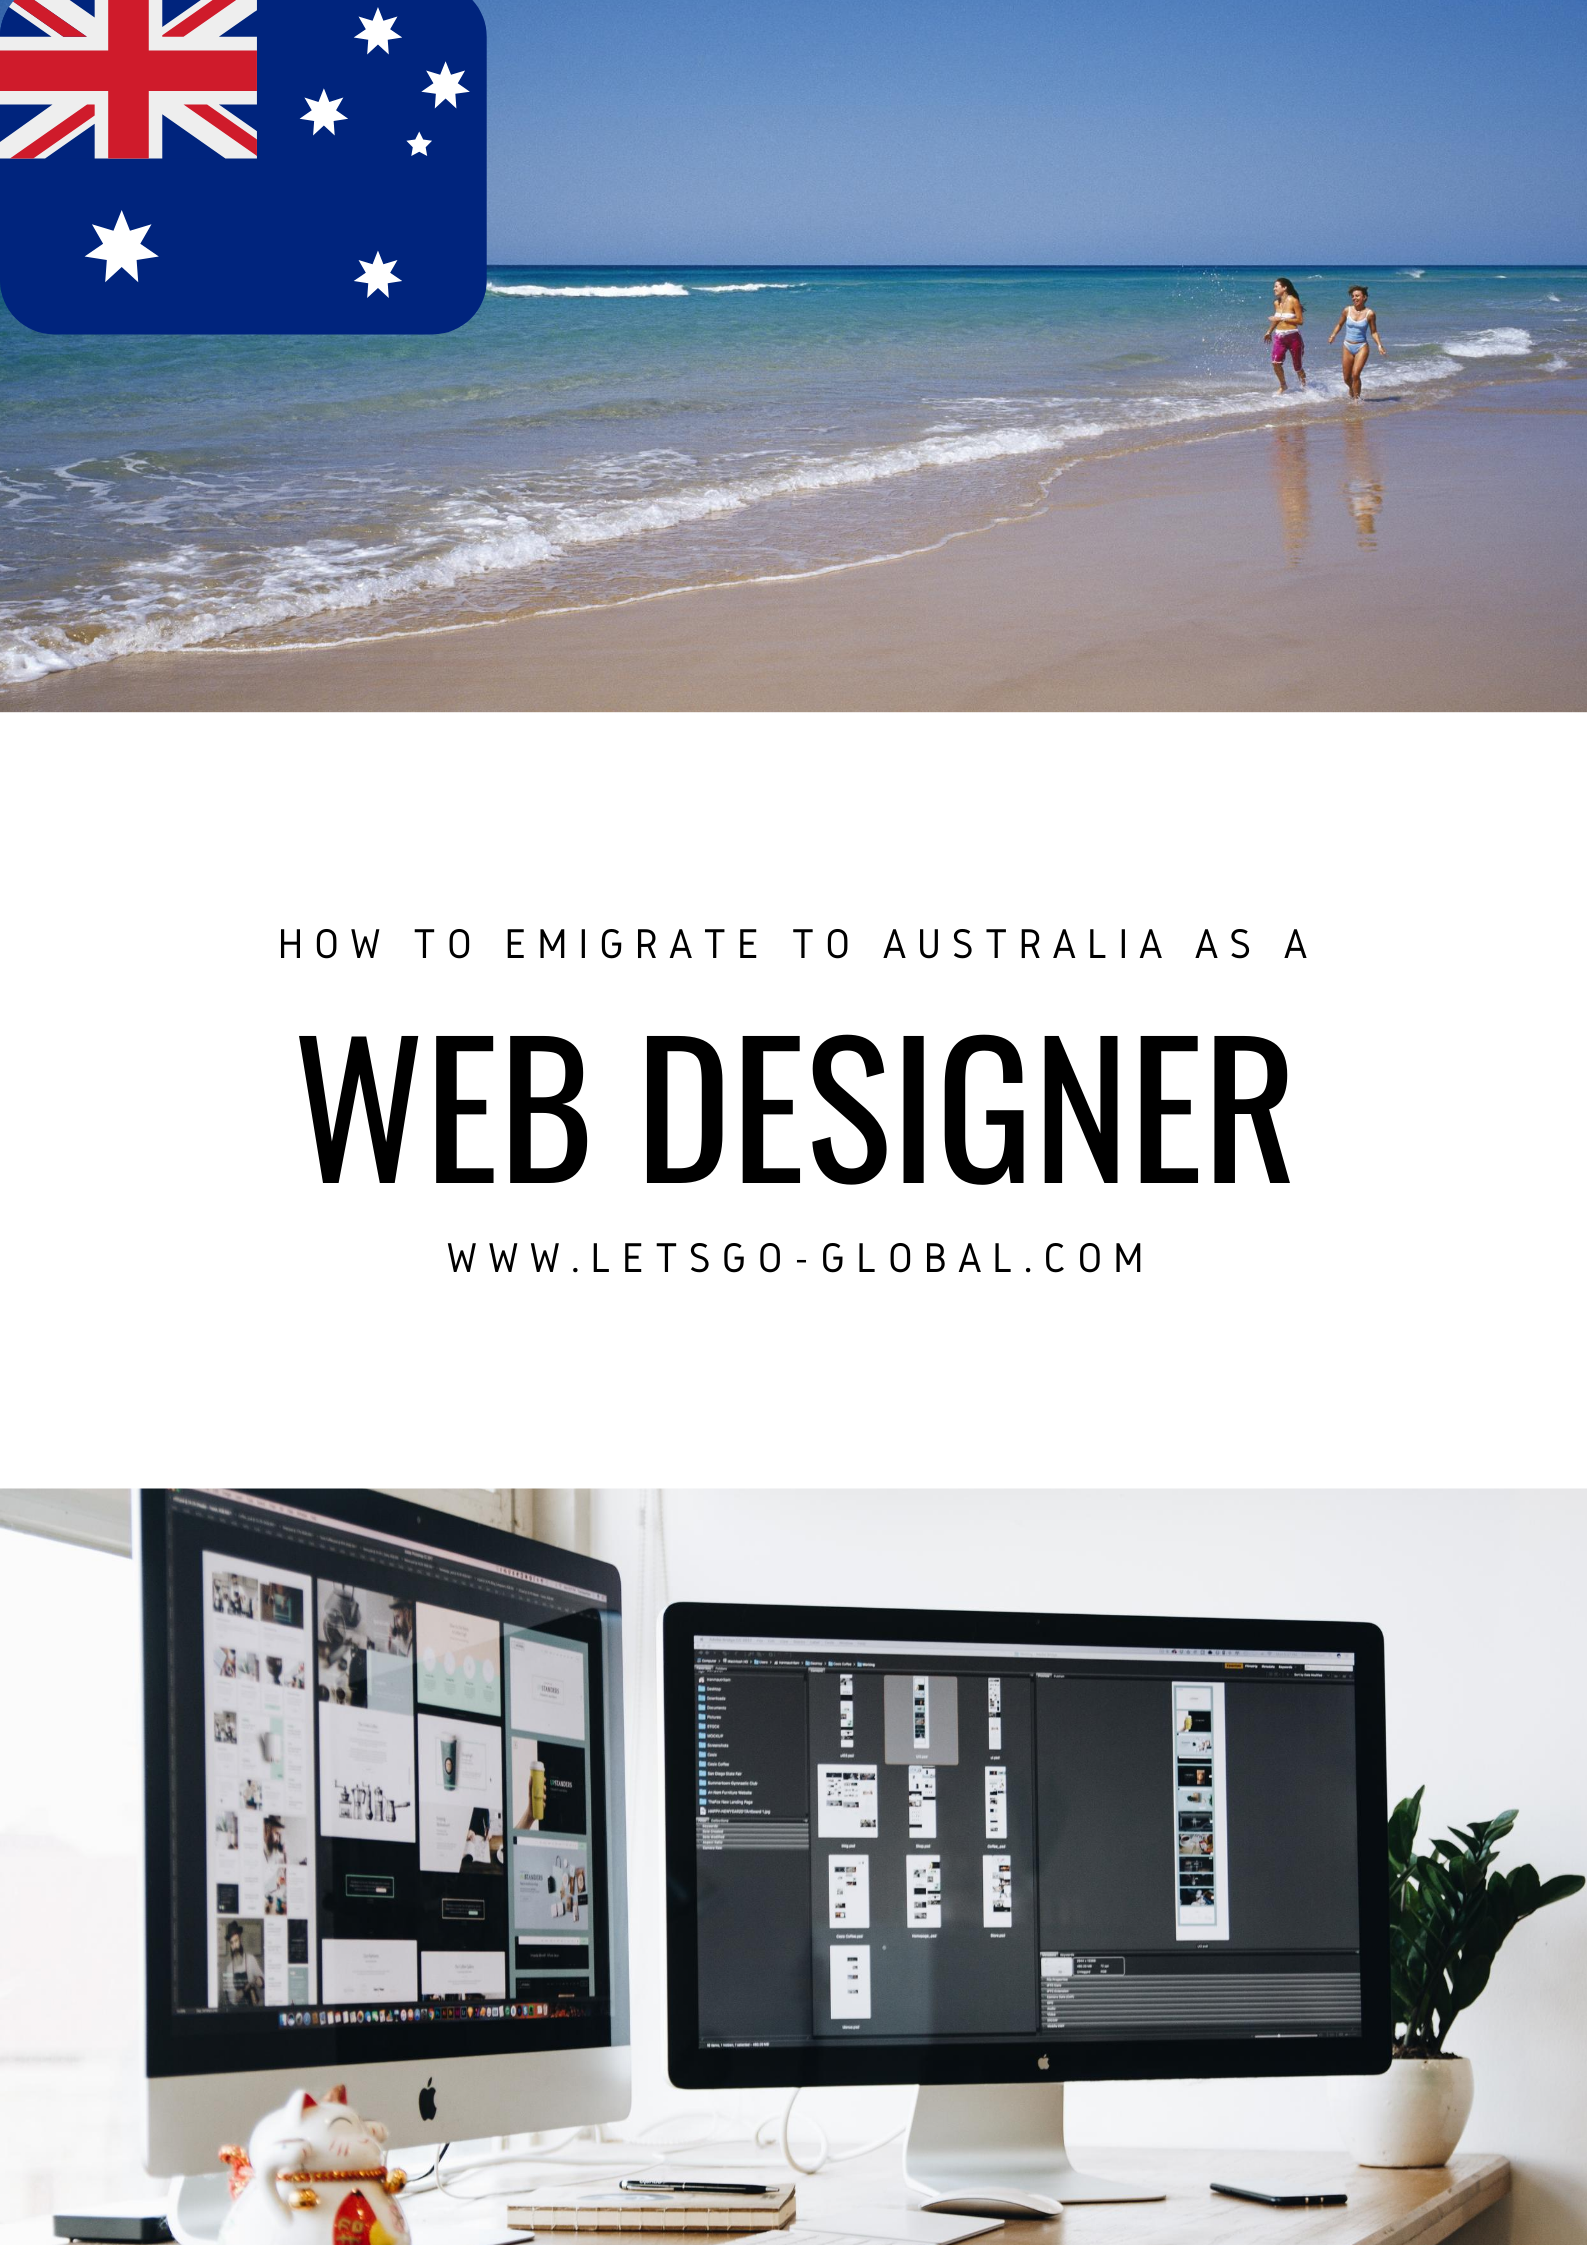 Migrate to Australia as a Web Designer